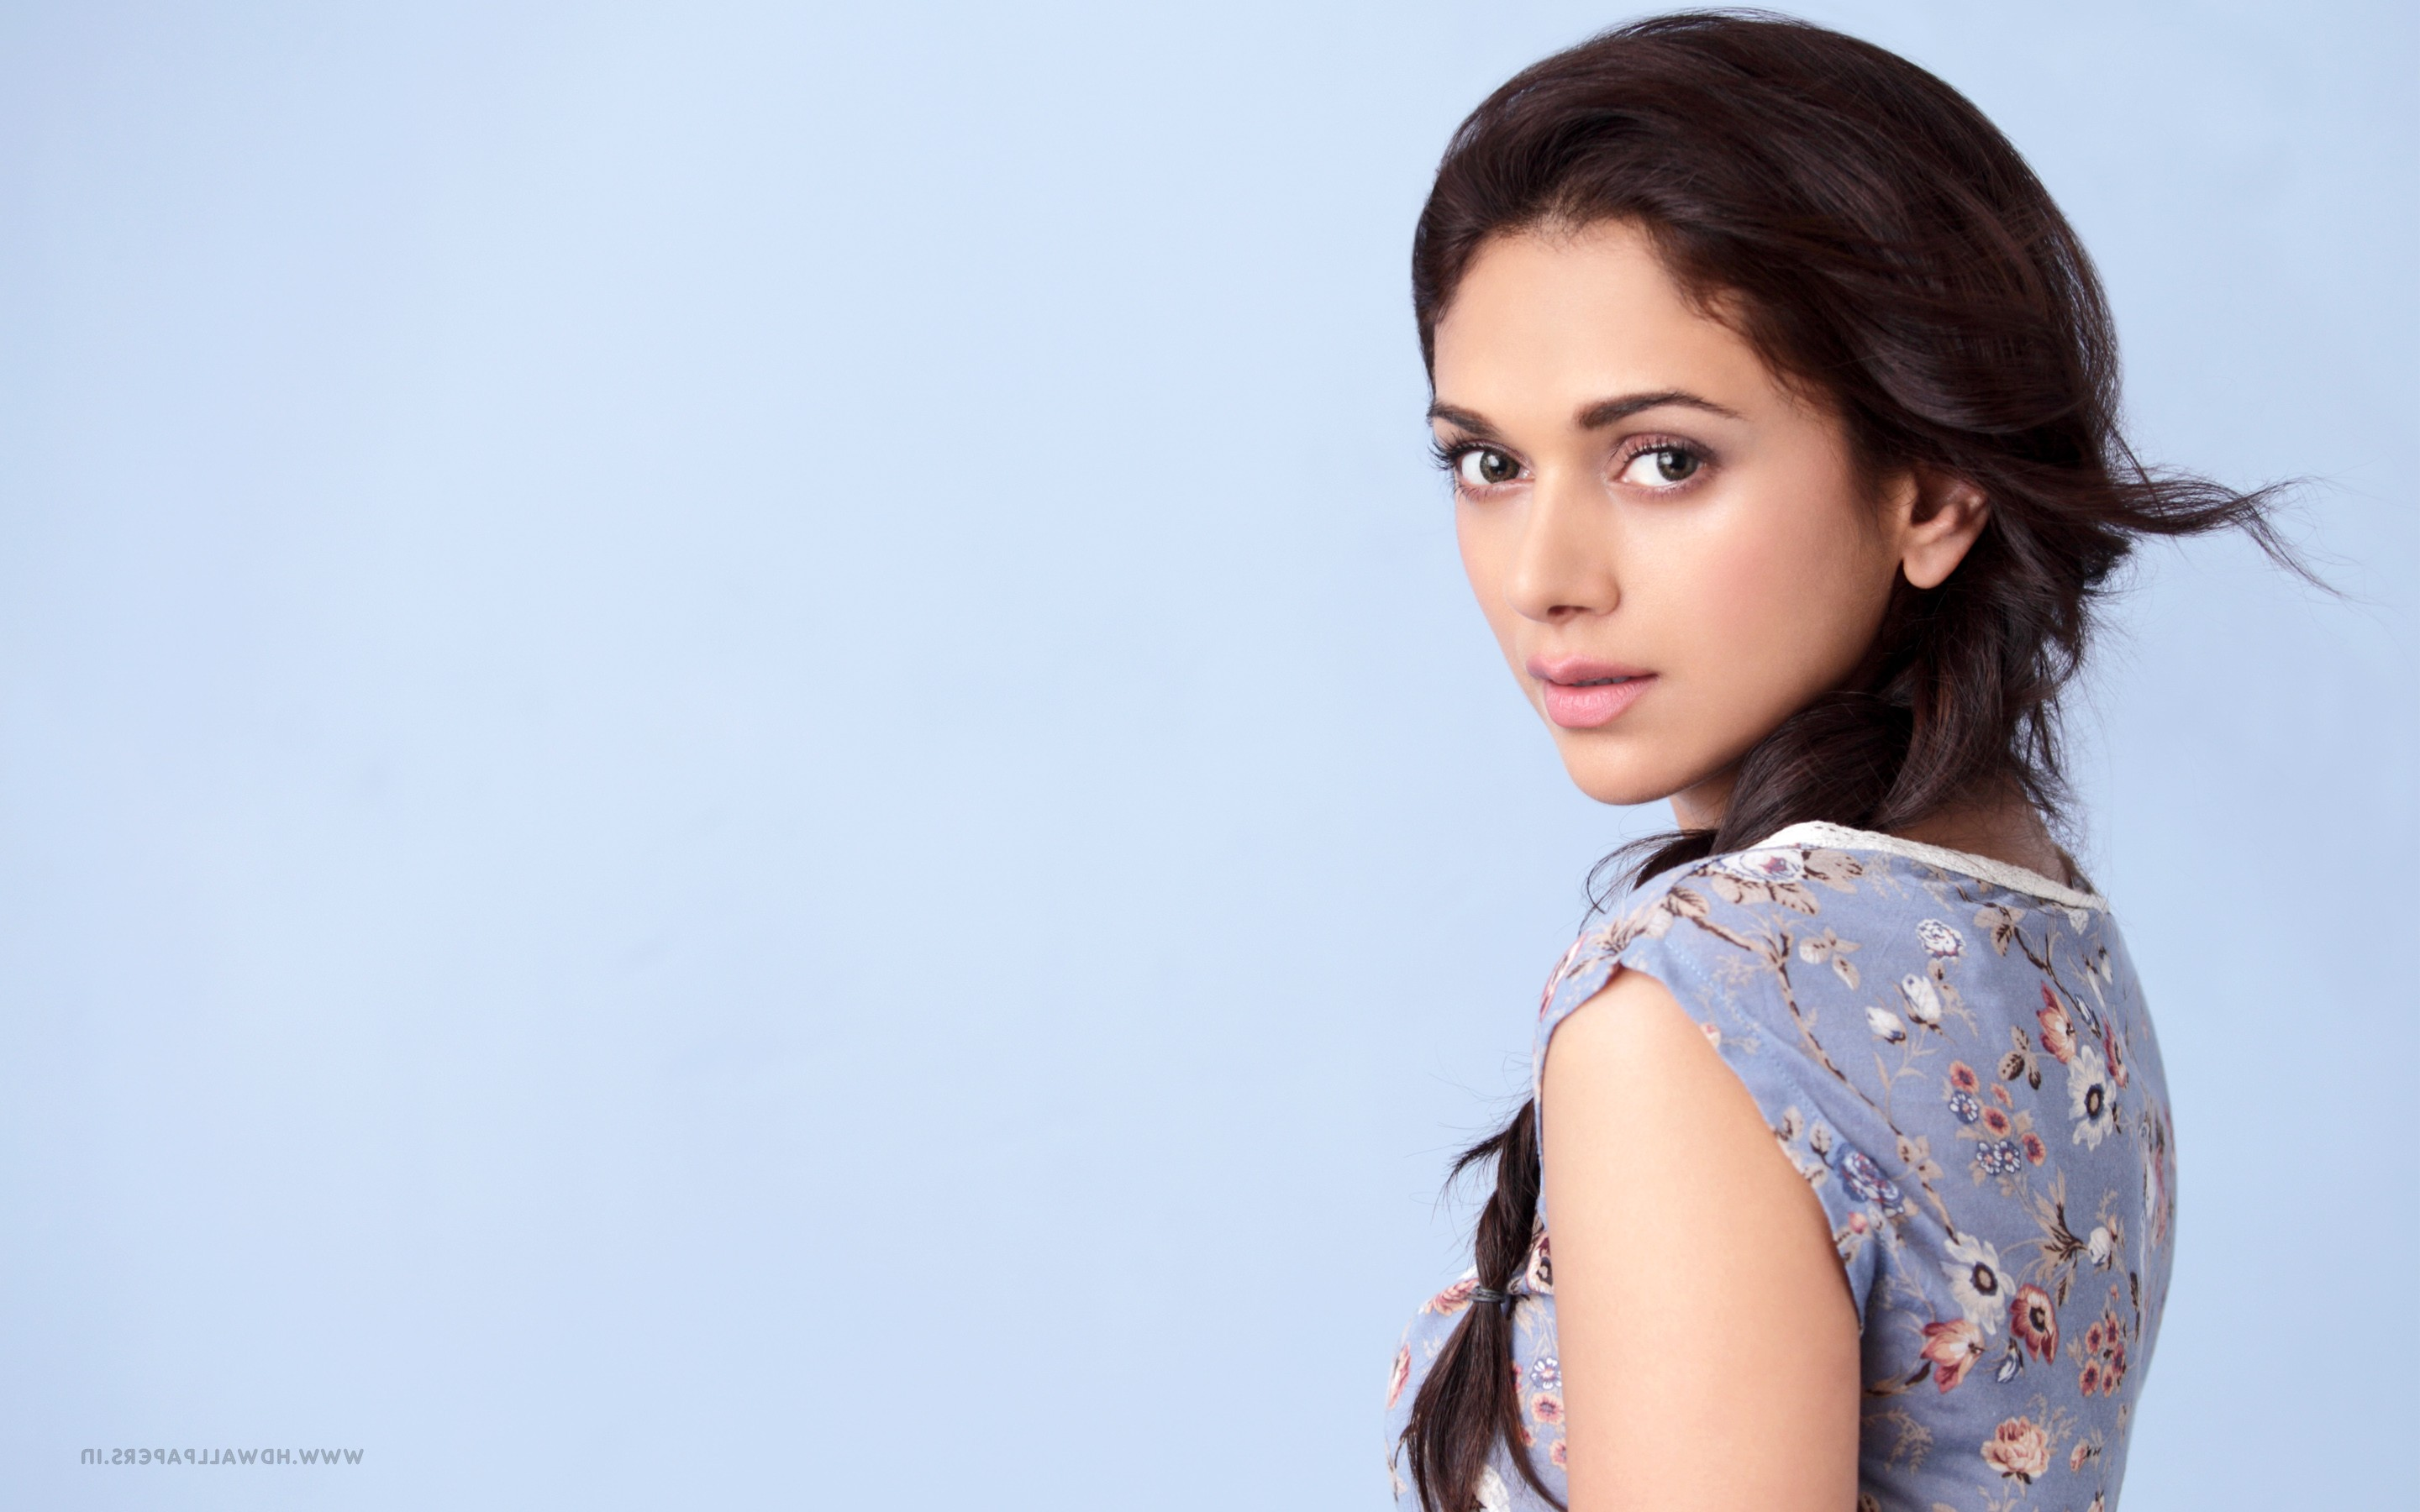 2880x1800 aditi rao hydari 2 macbook pro retina hd 4k for Aditi indian cuisine